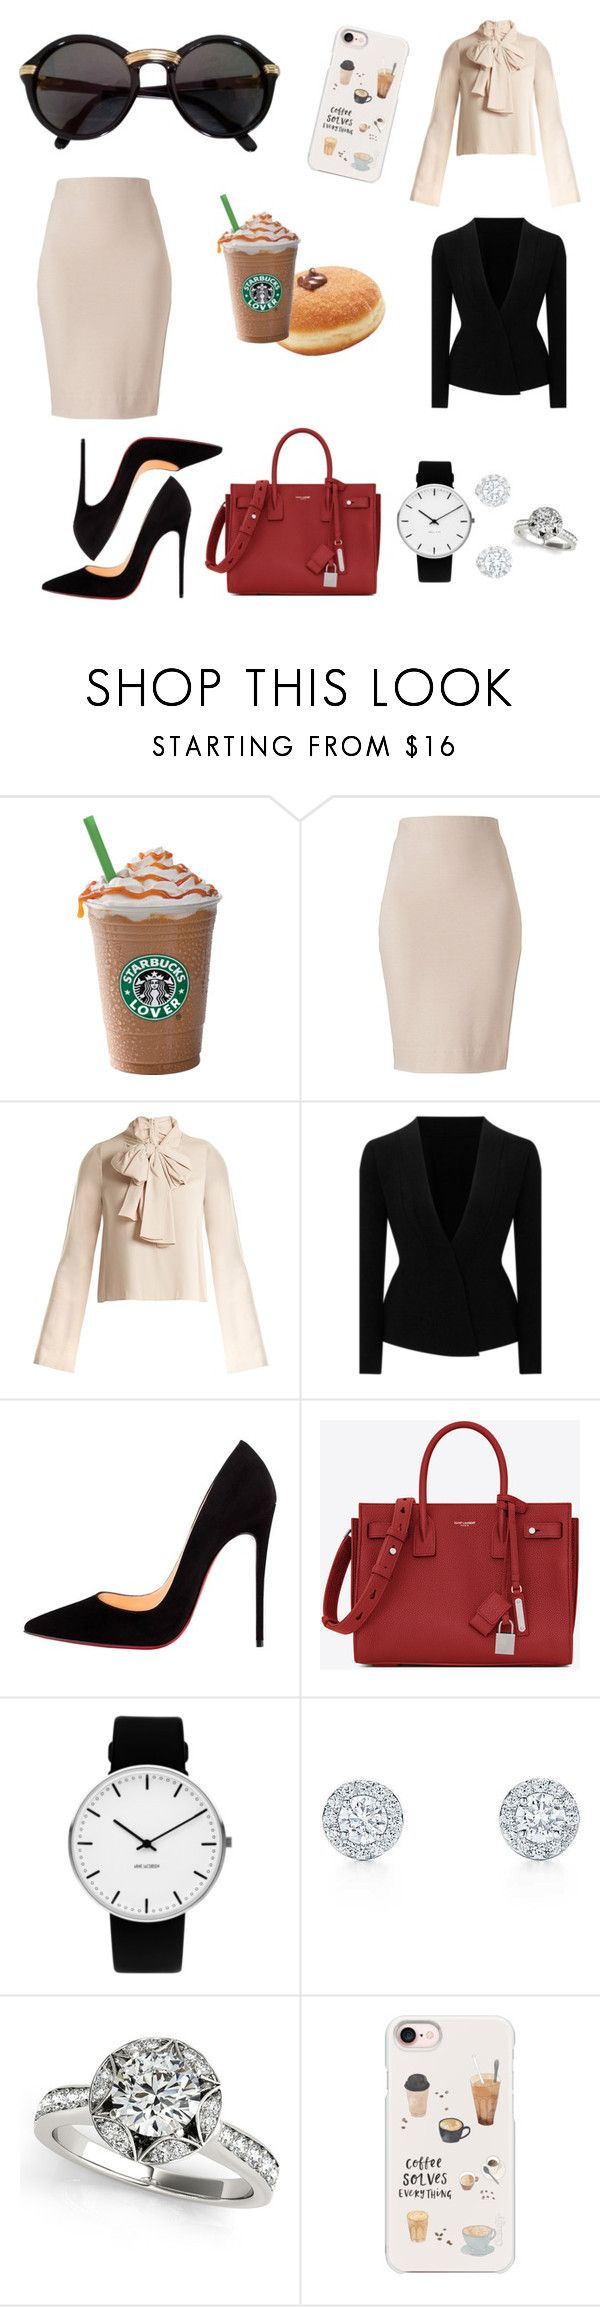 """fashion office"" by rossinigiorgia ❤ liked on Polyvore featuring Winser London, Khaite, Roland Mouret, Christian Louboutin, Yves Saint Laurent, Rosendahl, Casetify and Cartier"